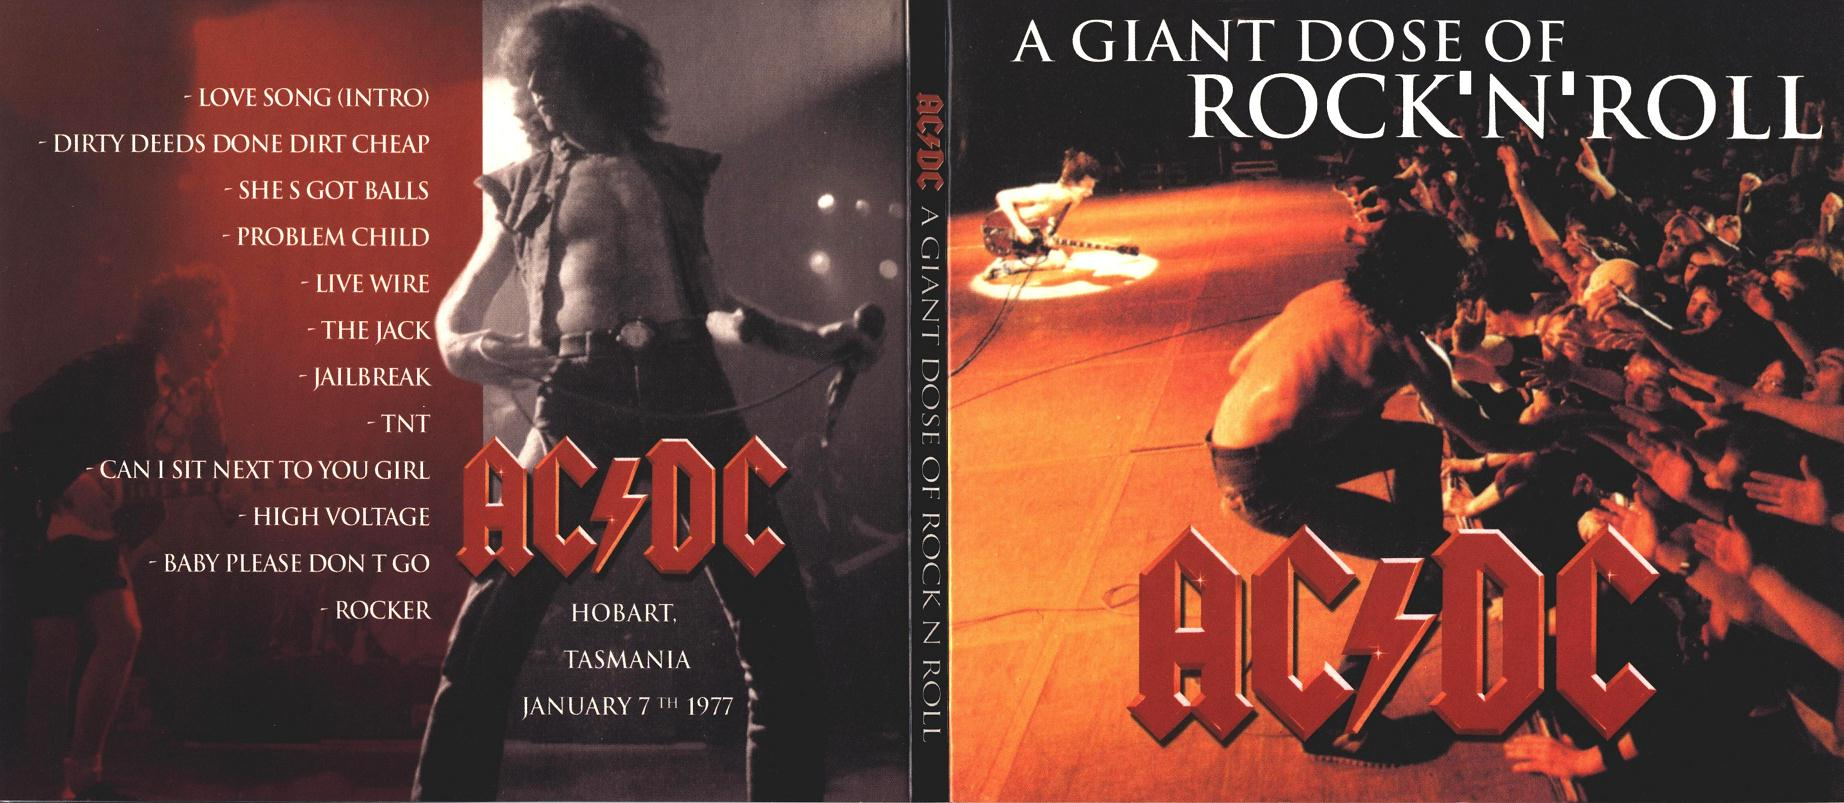 1977-01-07-A_Giant_Dose_of_Rock_n_Roll-digipack